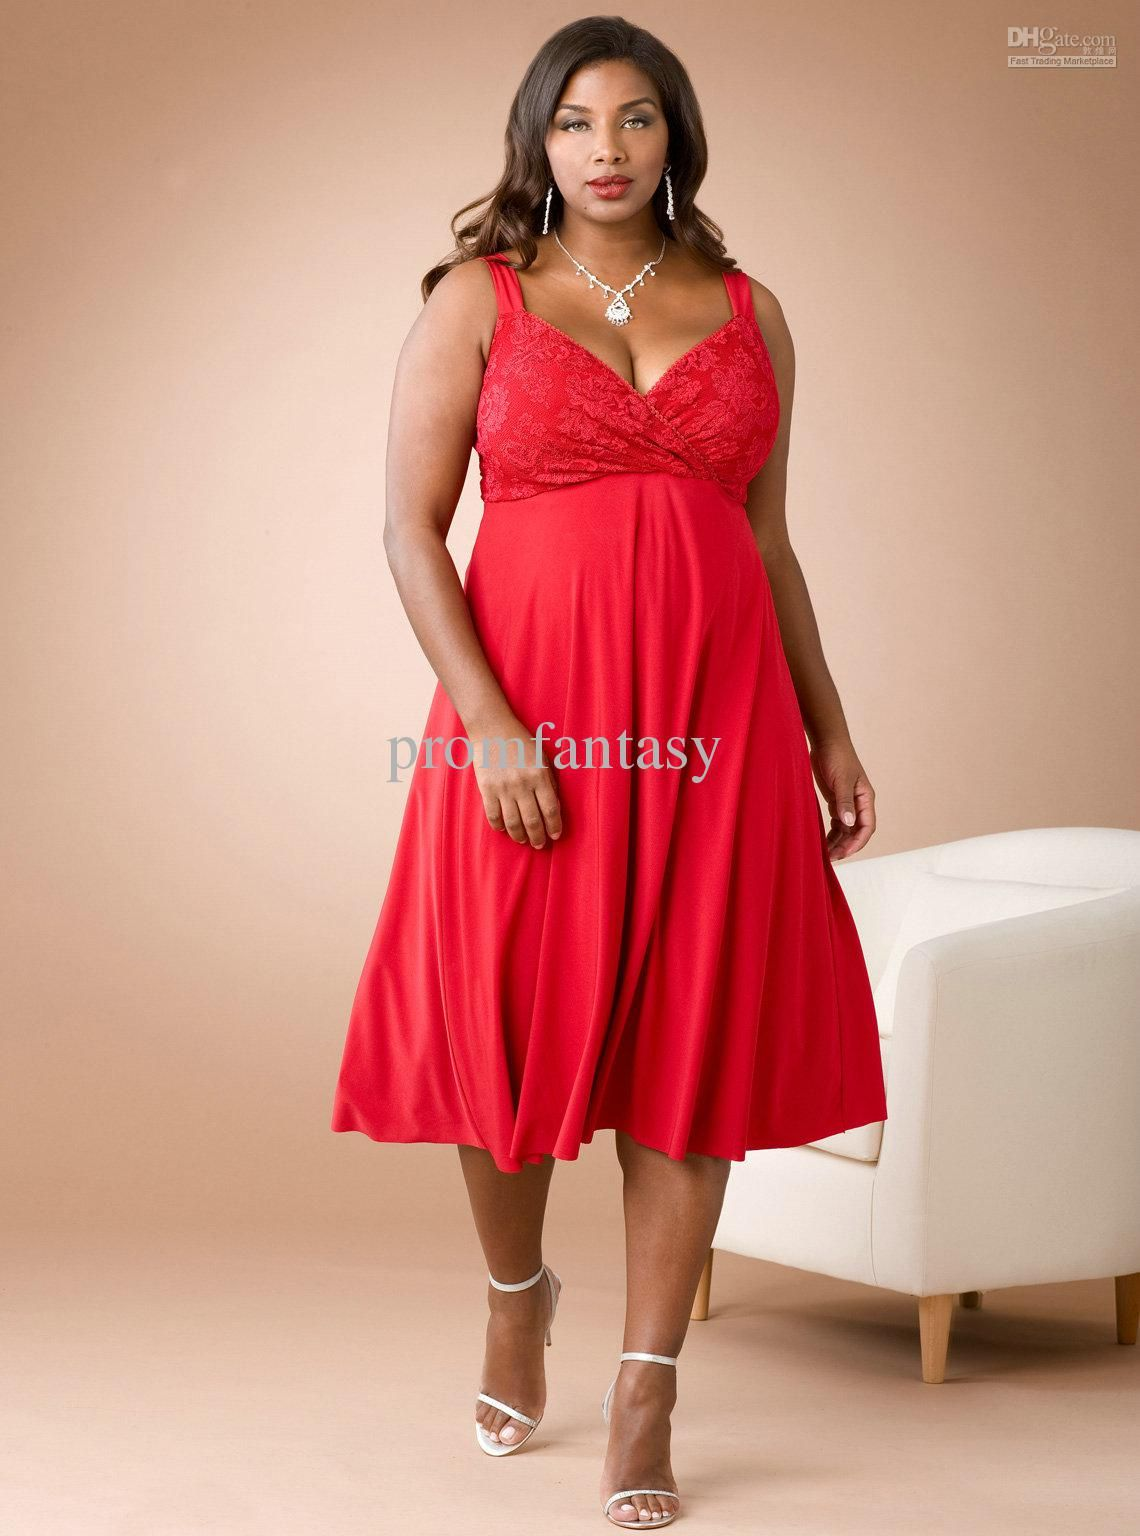 2016 Cheap Sweetheart Neckline Red Chiffon A Line Knee Length Plus Size Evening Party Formal Dresses White Prom Dress Cheap Cocktail Dresses From Promfantasy Plus Size Red Dress Bridesmaid Dresses